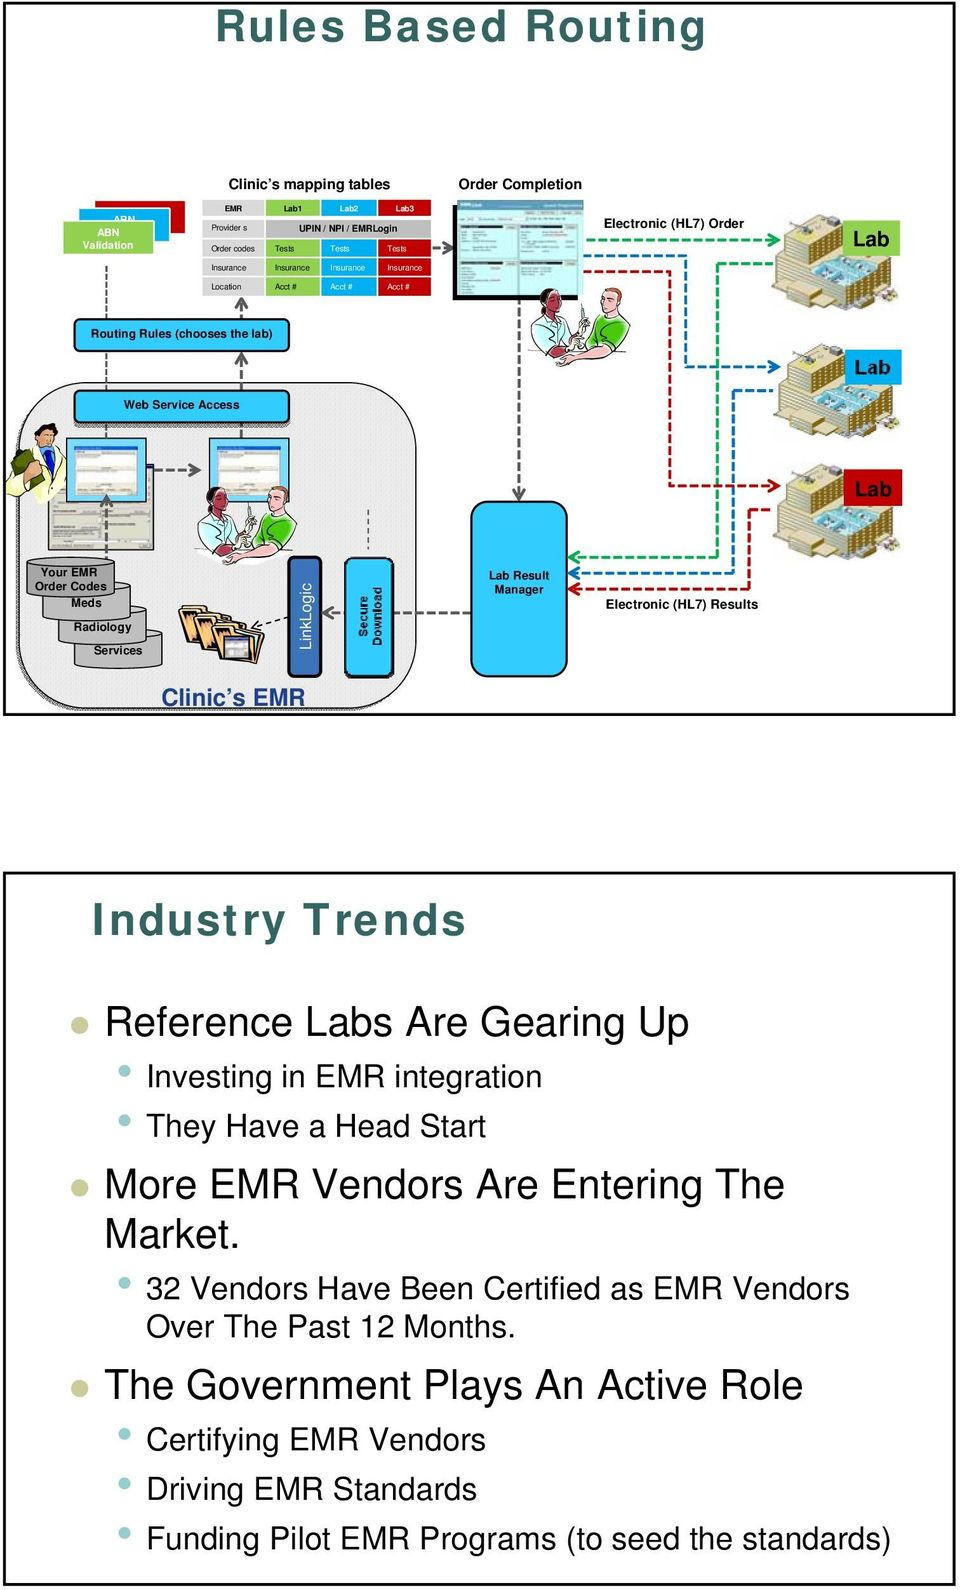 Lab Result Manager Electronic (HL7) Results Clinic s EMR Industry Trends Reference Labs Are Gearing Up Investing in EMR integration They Have a Head Start More EMR Vendors Are Entering The Market.